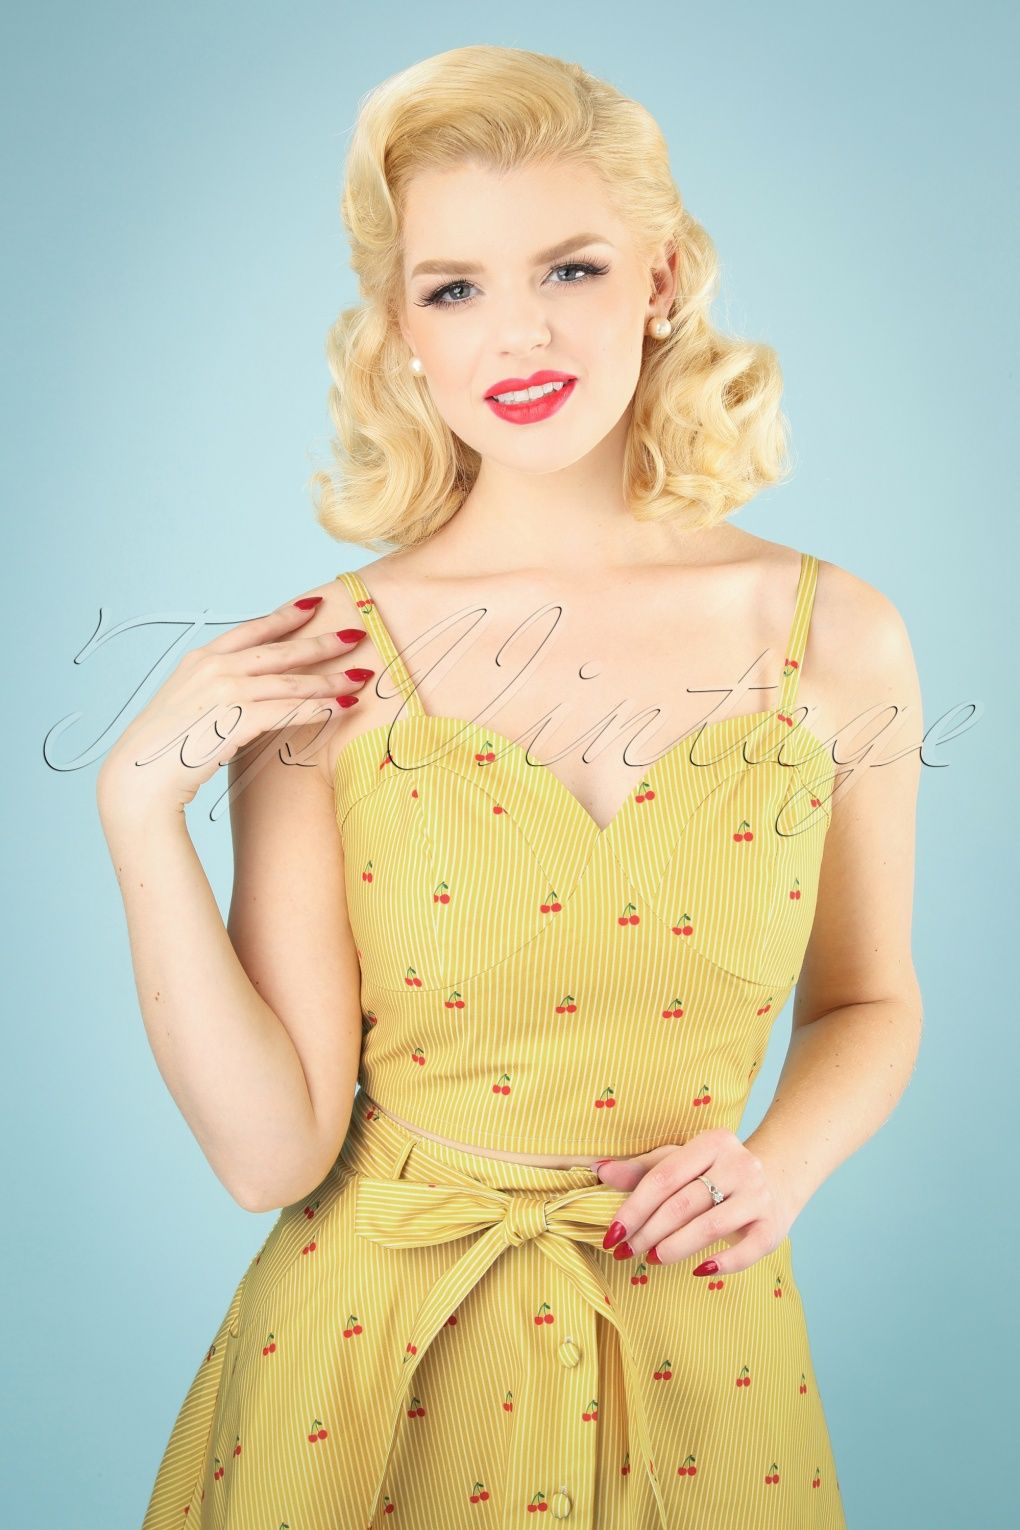 50s Natalie Top in Cherry Stripe Yellow   Crop top and